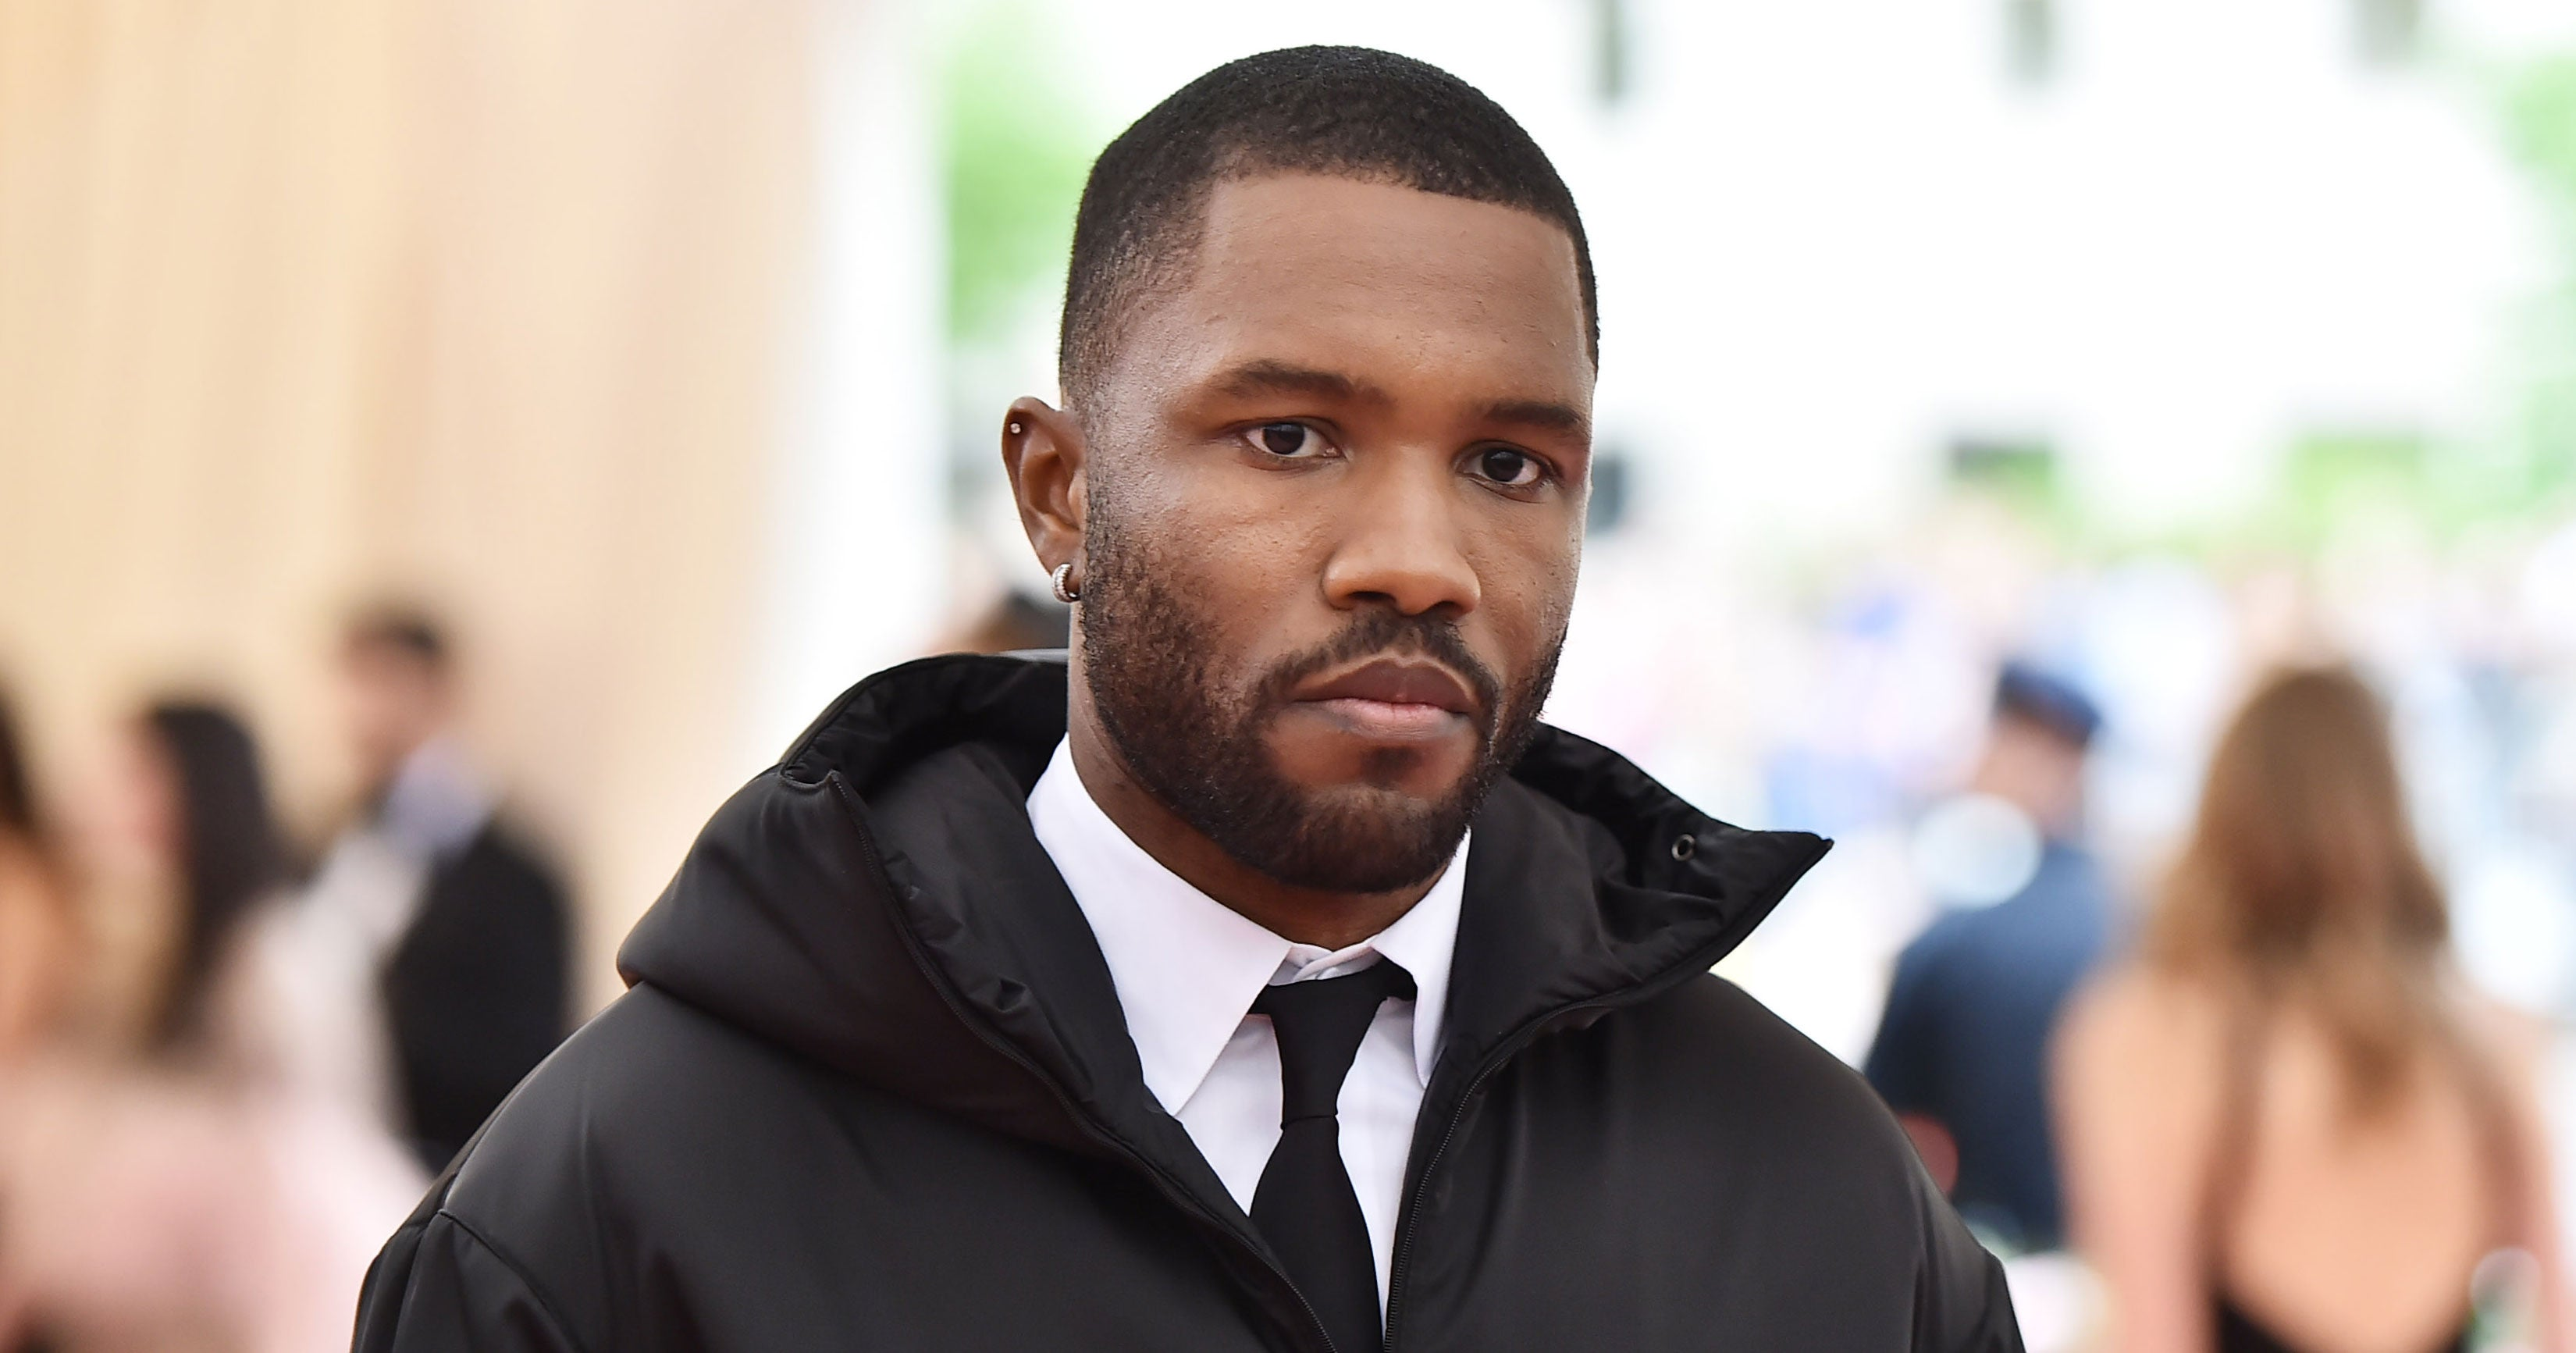 Frank Ocean's Younger Brother Ryan Breaux Reportedly Killed In Car Accident